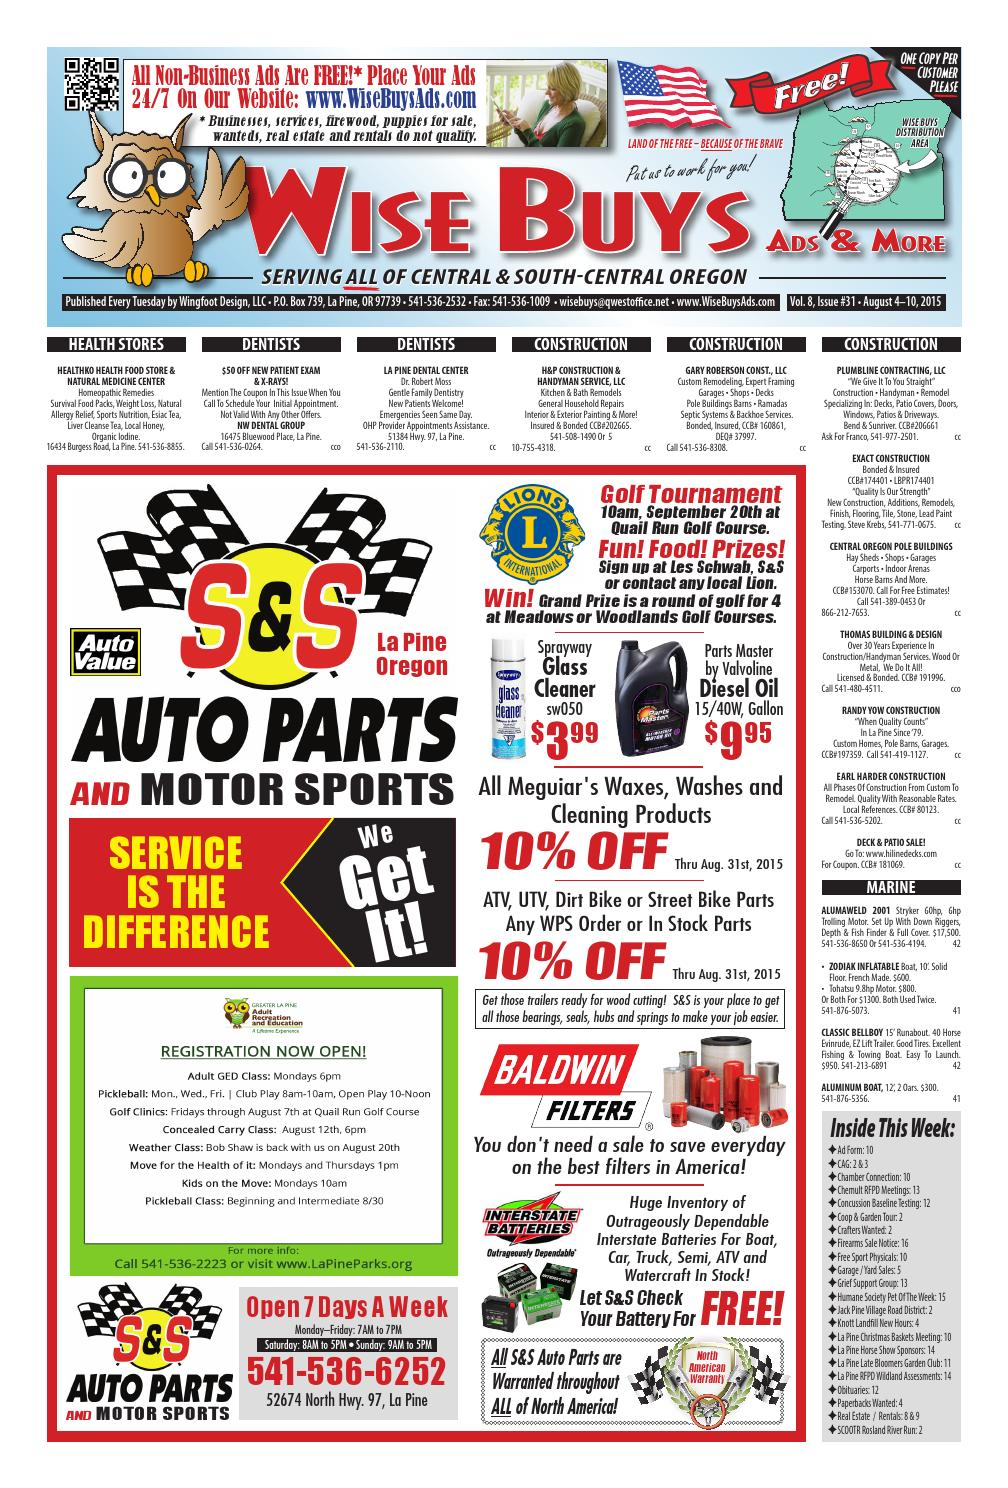 Wise Buys 08-04-15 by Wise Buys Ads & More - issuu